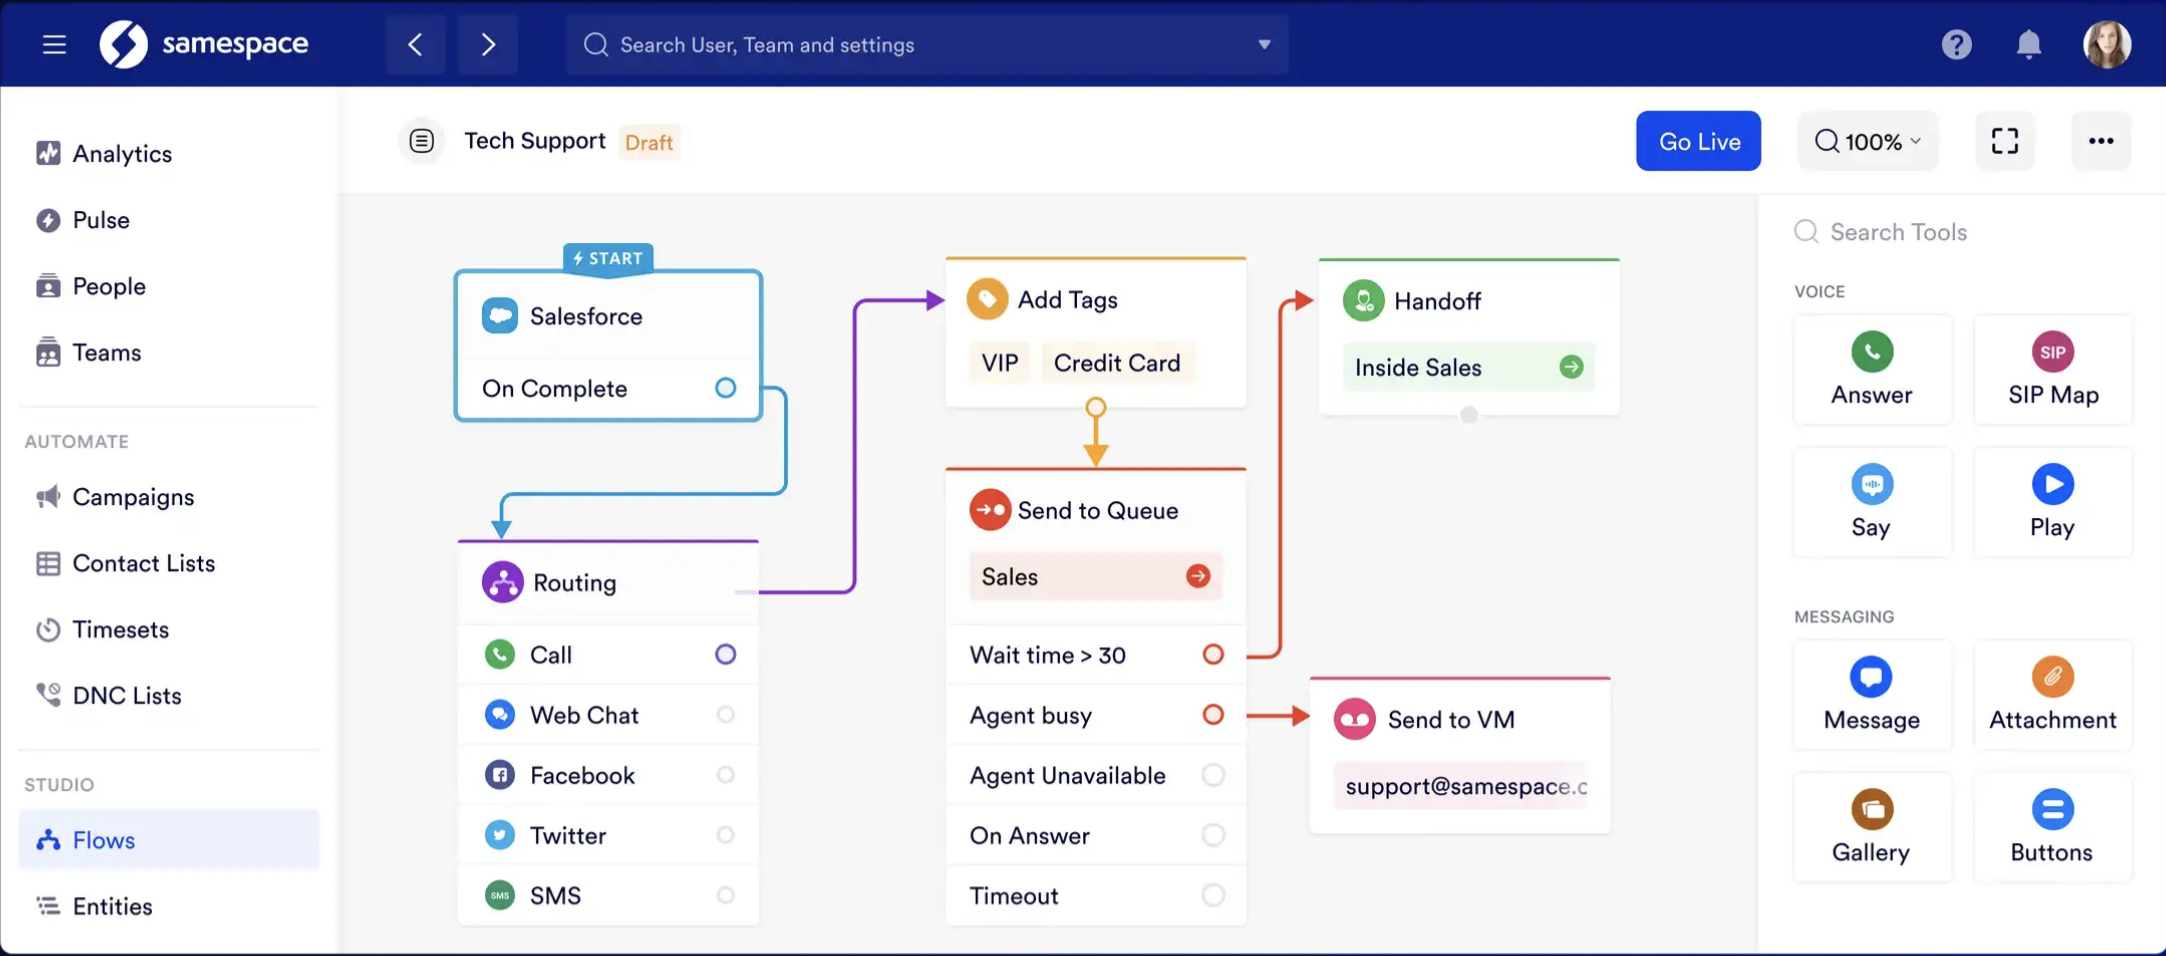 Samespace screenshot: Samespace lets you create, route, and deploy voice, chat and messaging flows in minutes. Whether for customer support or sales, simply drag and drop, no coding needed.